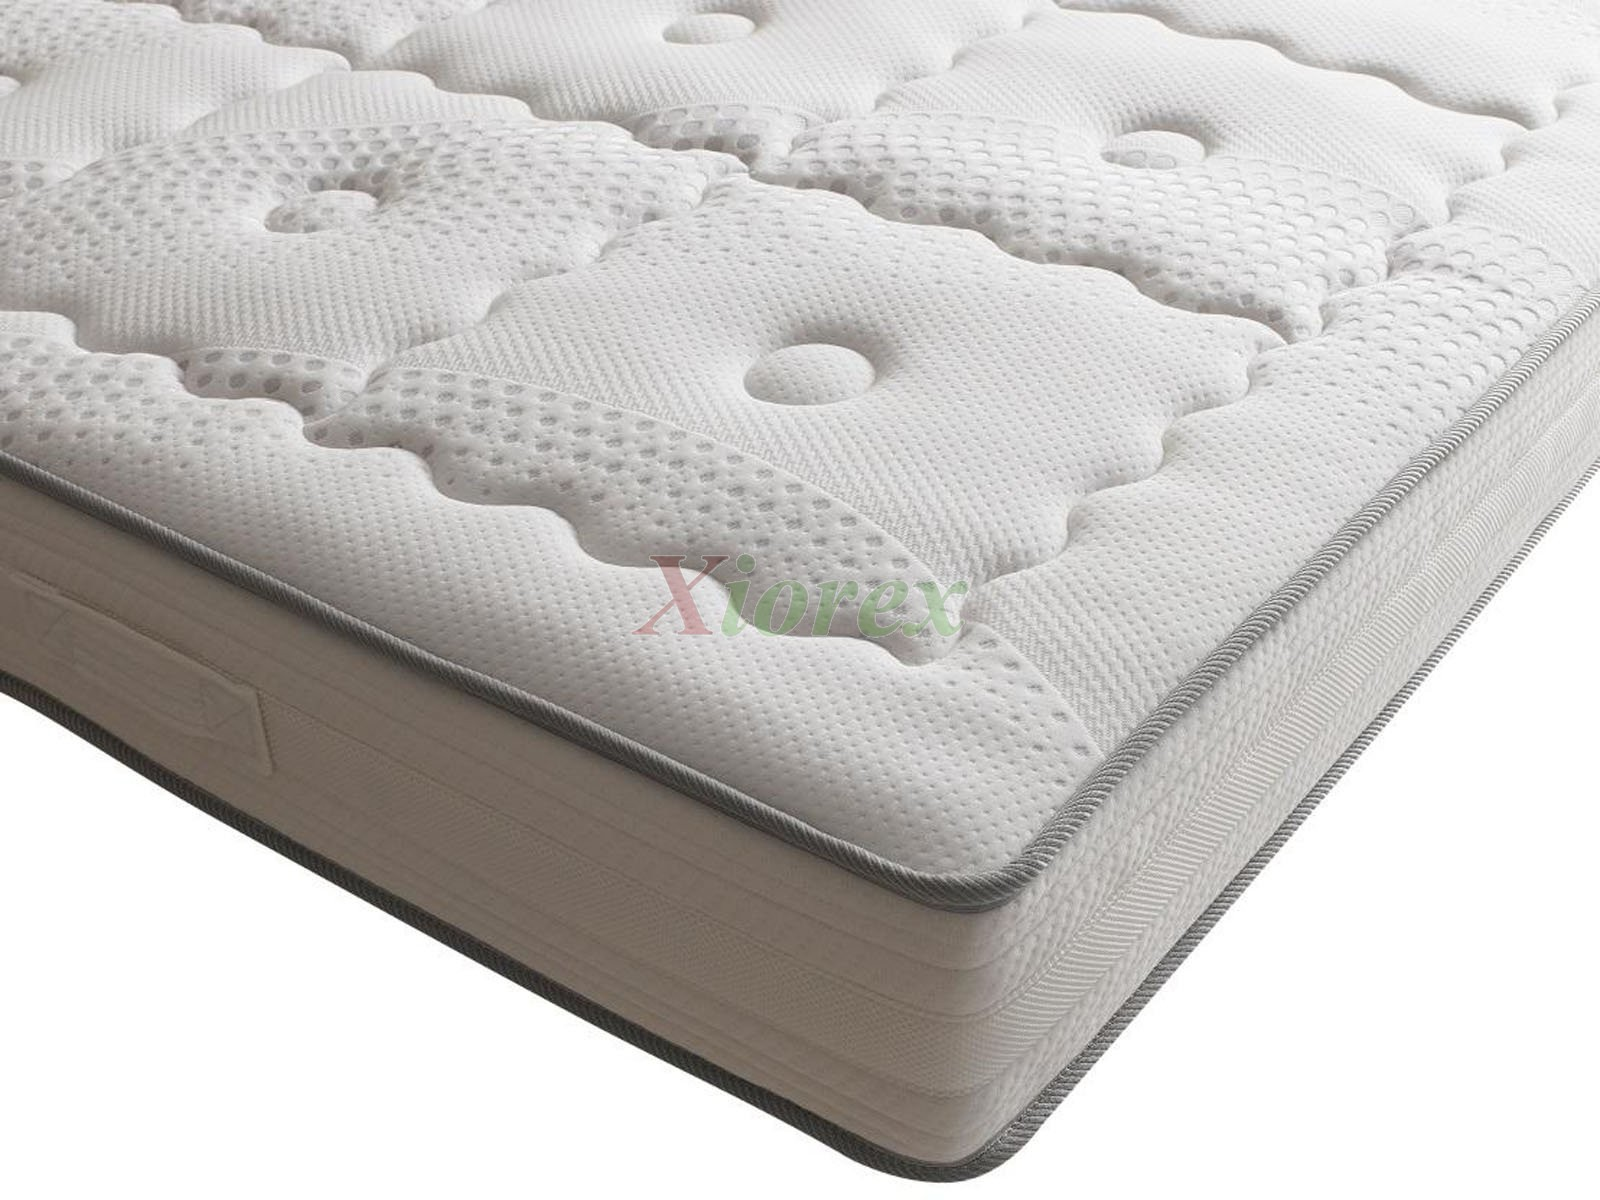 jupiter latex mattress gami latex bed mattress by gautier xiorex. Black Bedroom Furniture Sets. Home Design Ideas